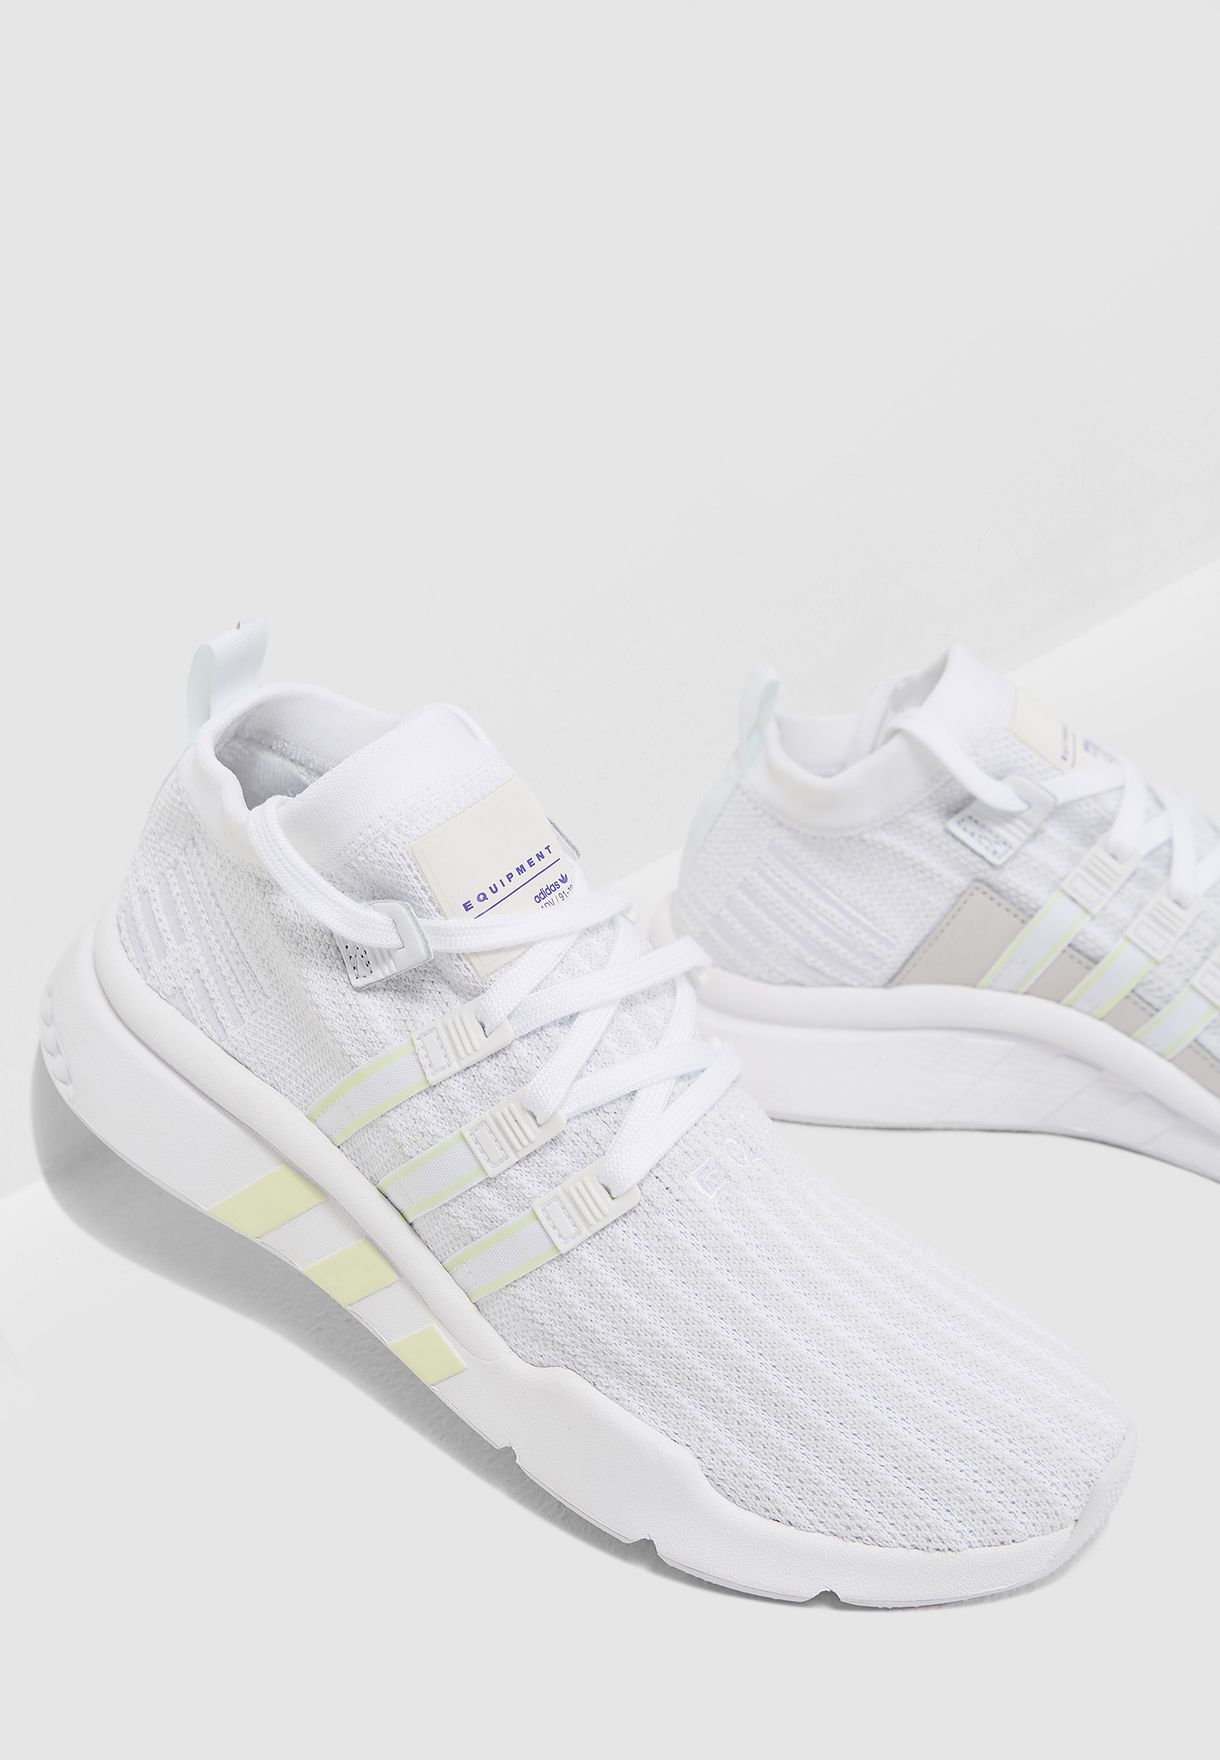 2f1ec3dbb3d5 Shop adidas Originals white EQT Support Mid ADV B37455 for Men in ...